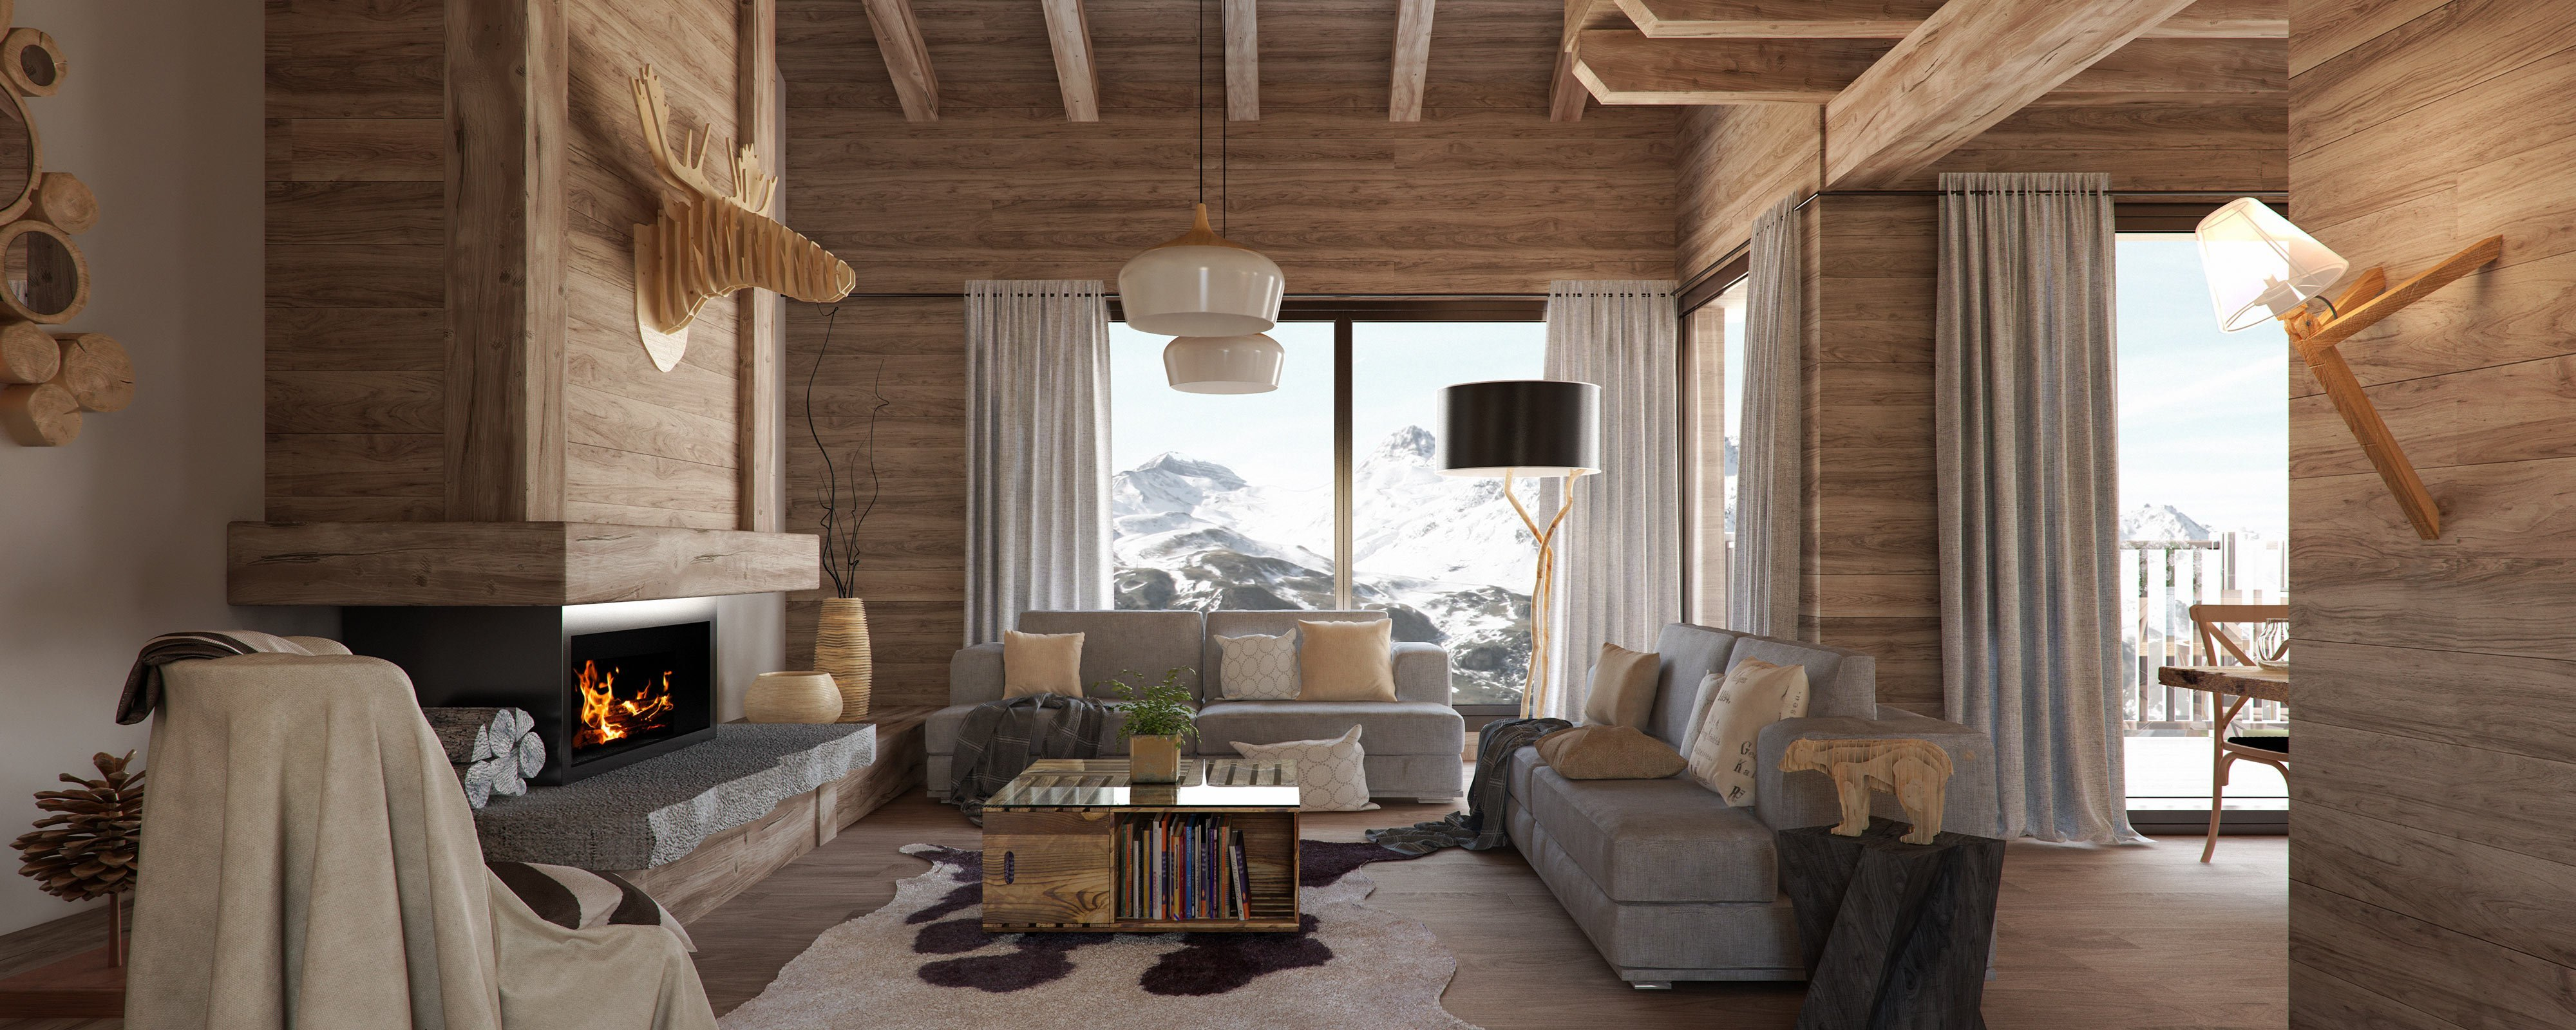 render interior of living room at of Grand Piolet attached houses by GAYARRE infografia